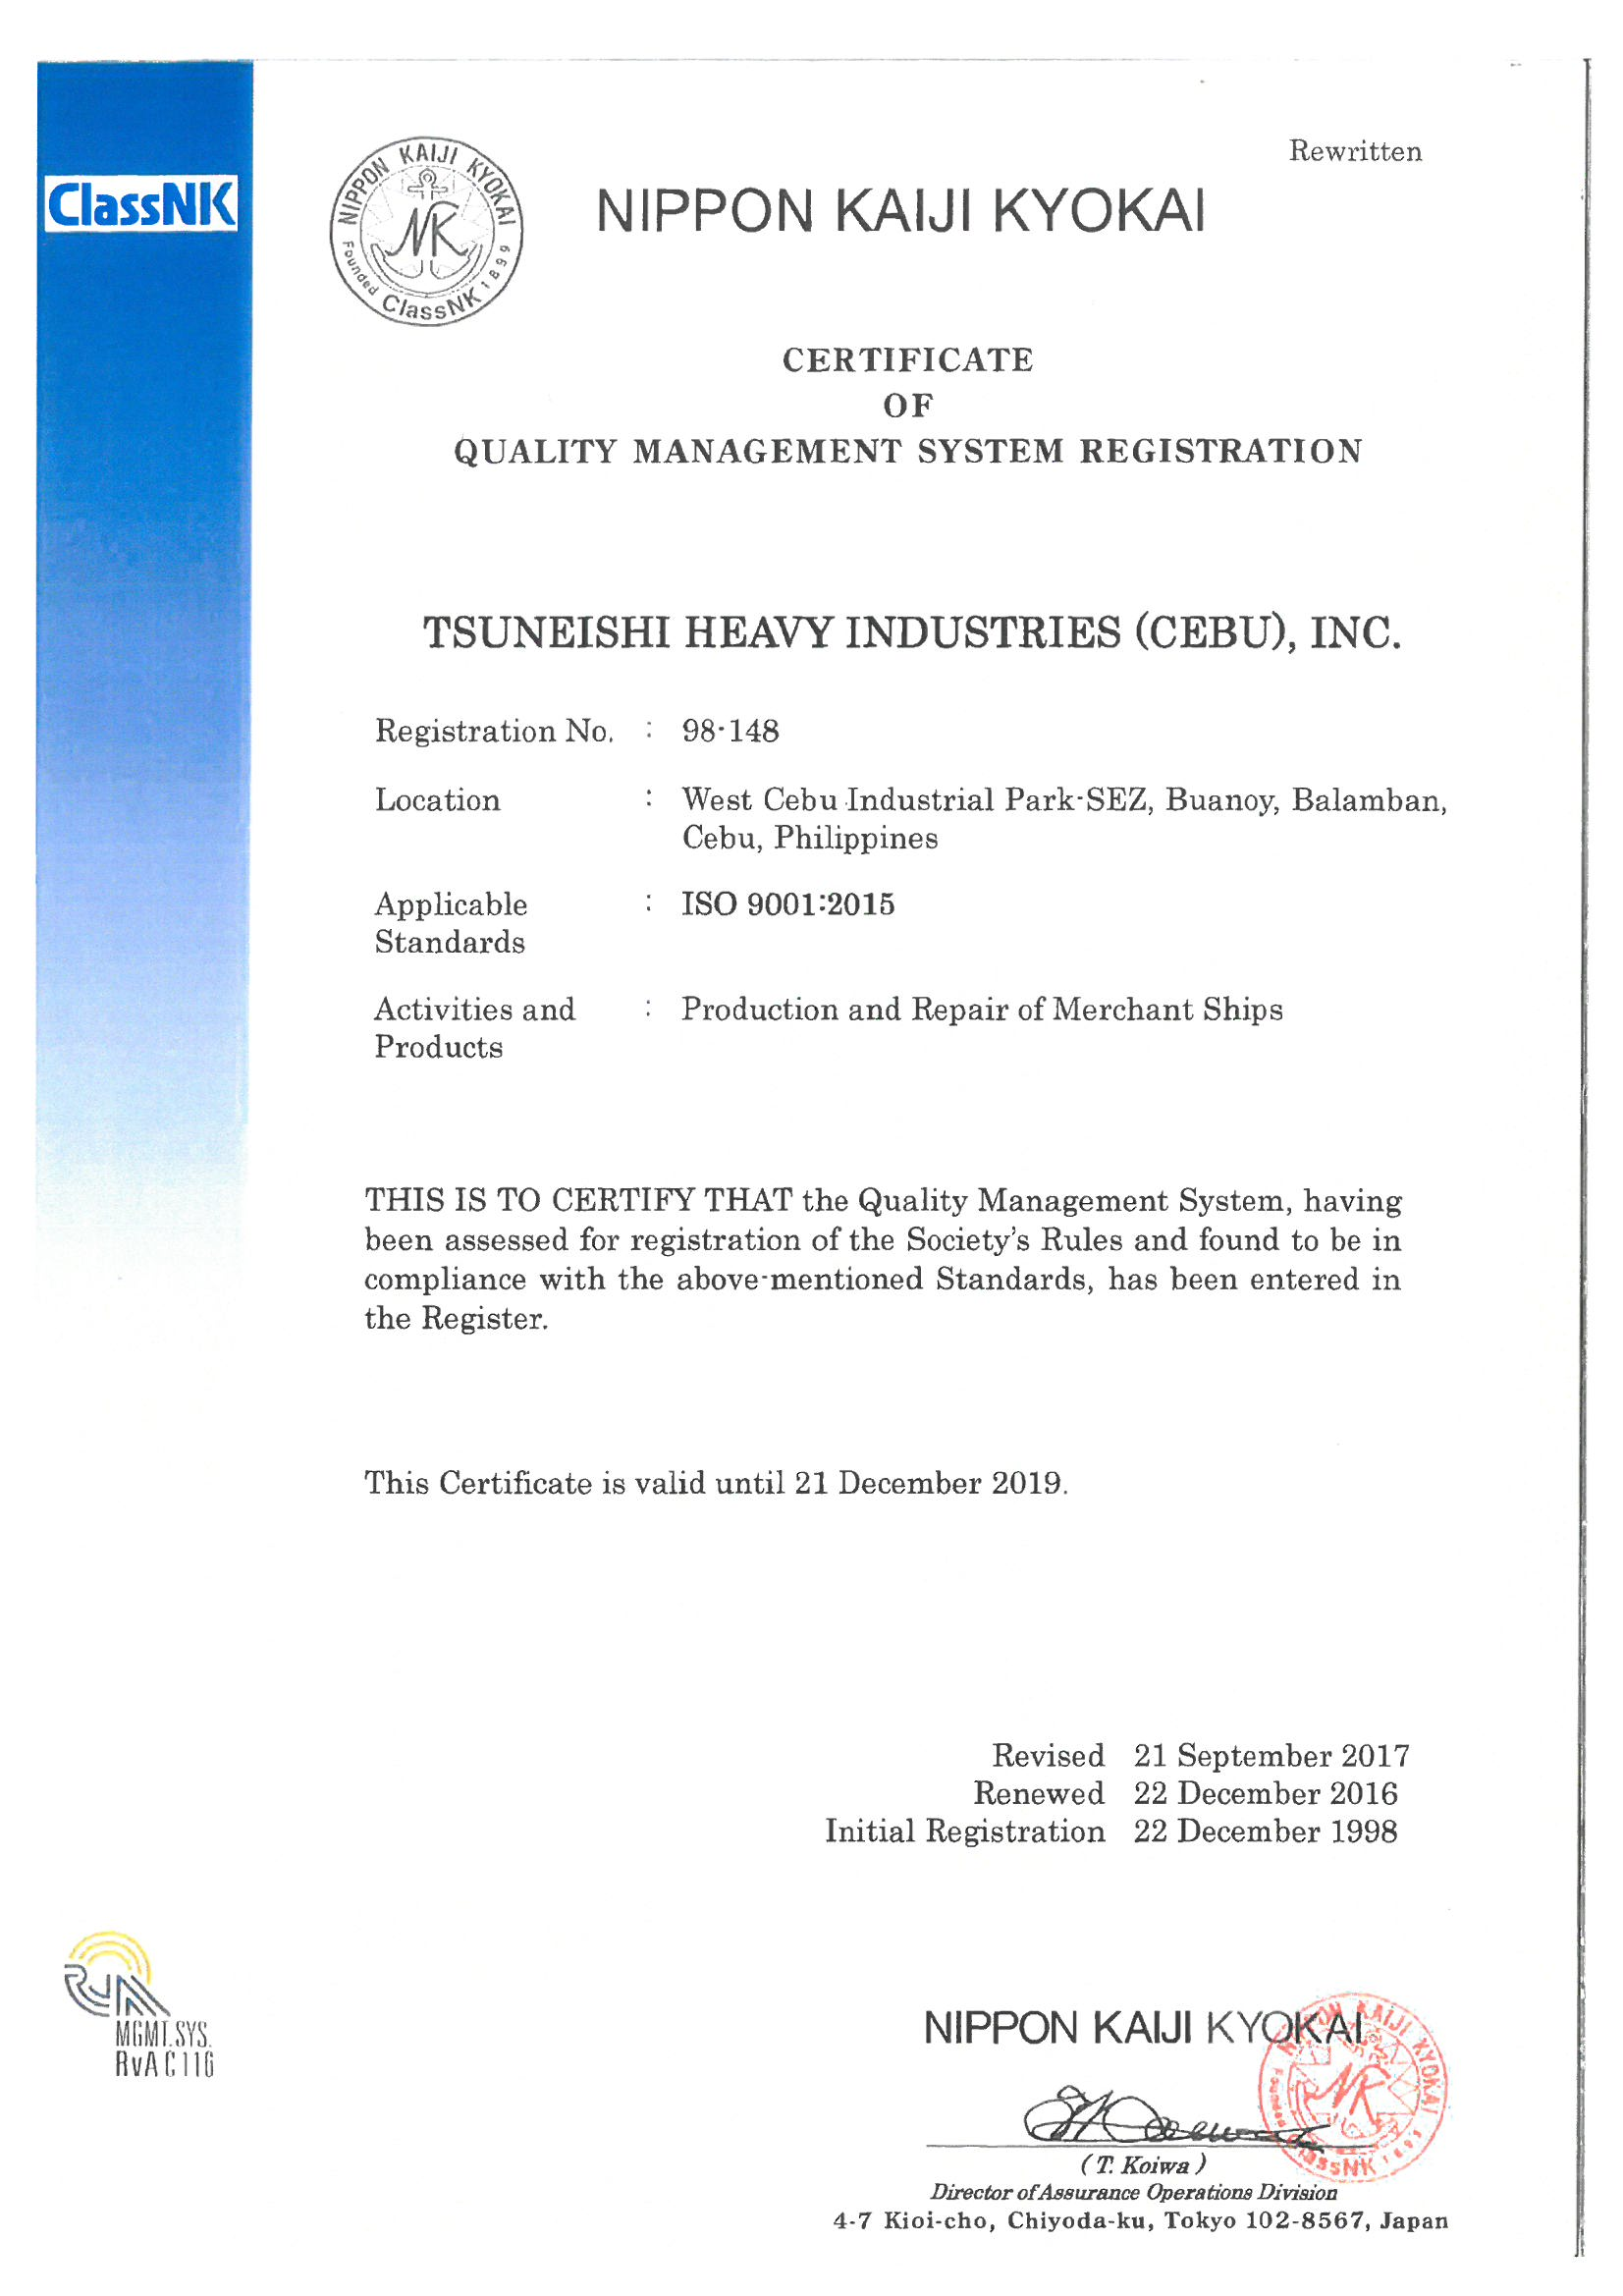 TSUNEISHI HEAVY INDUSTRIES (CEBU) Acquires ISO 9001 / 14001: 2015 Certification